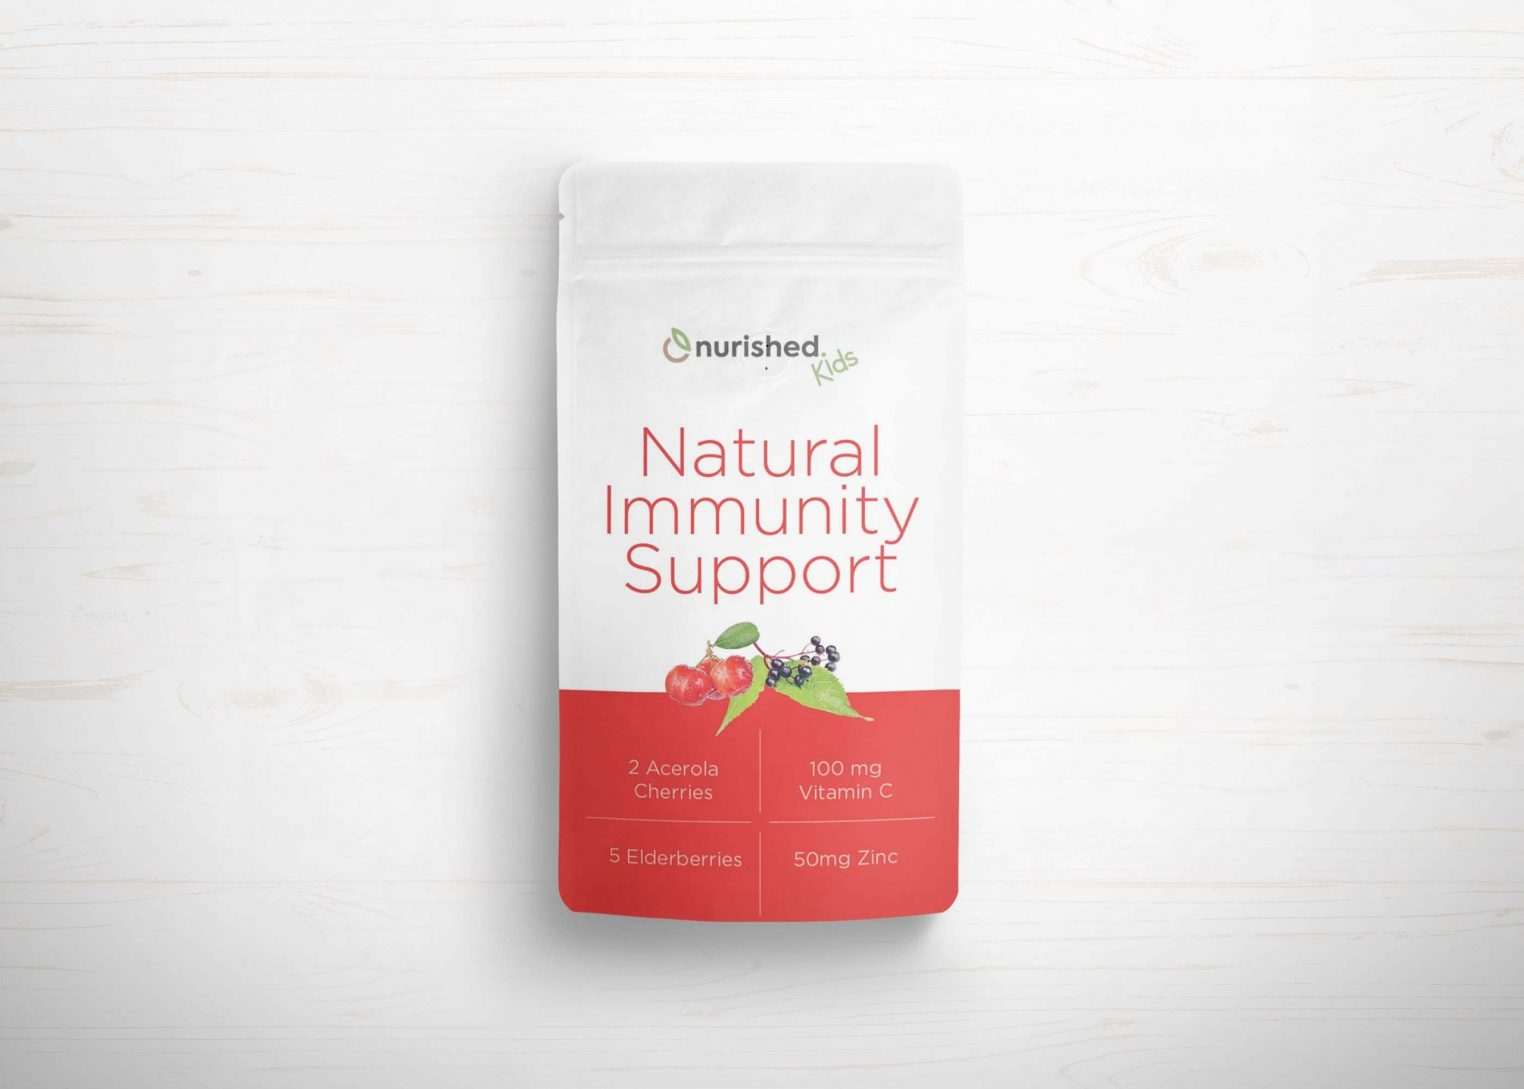 Red Pouch Branding Mockup